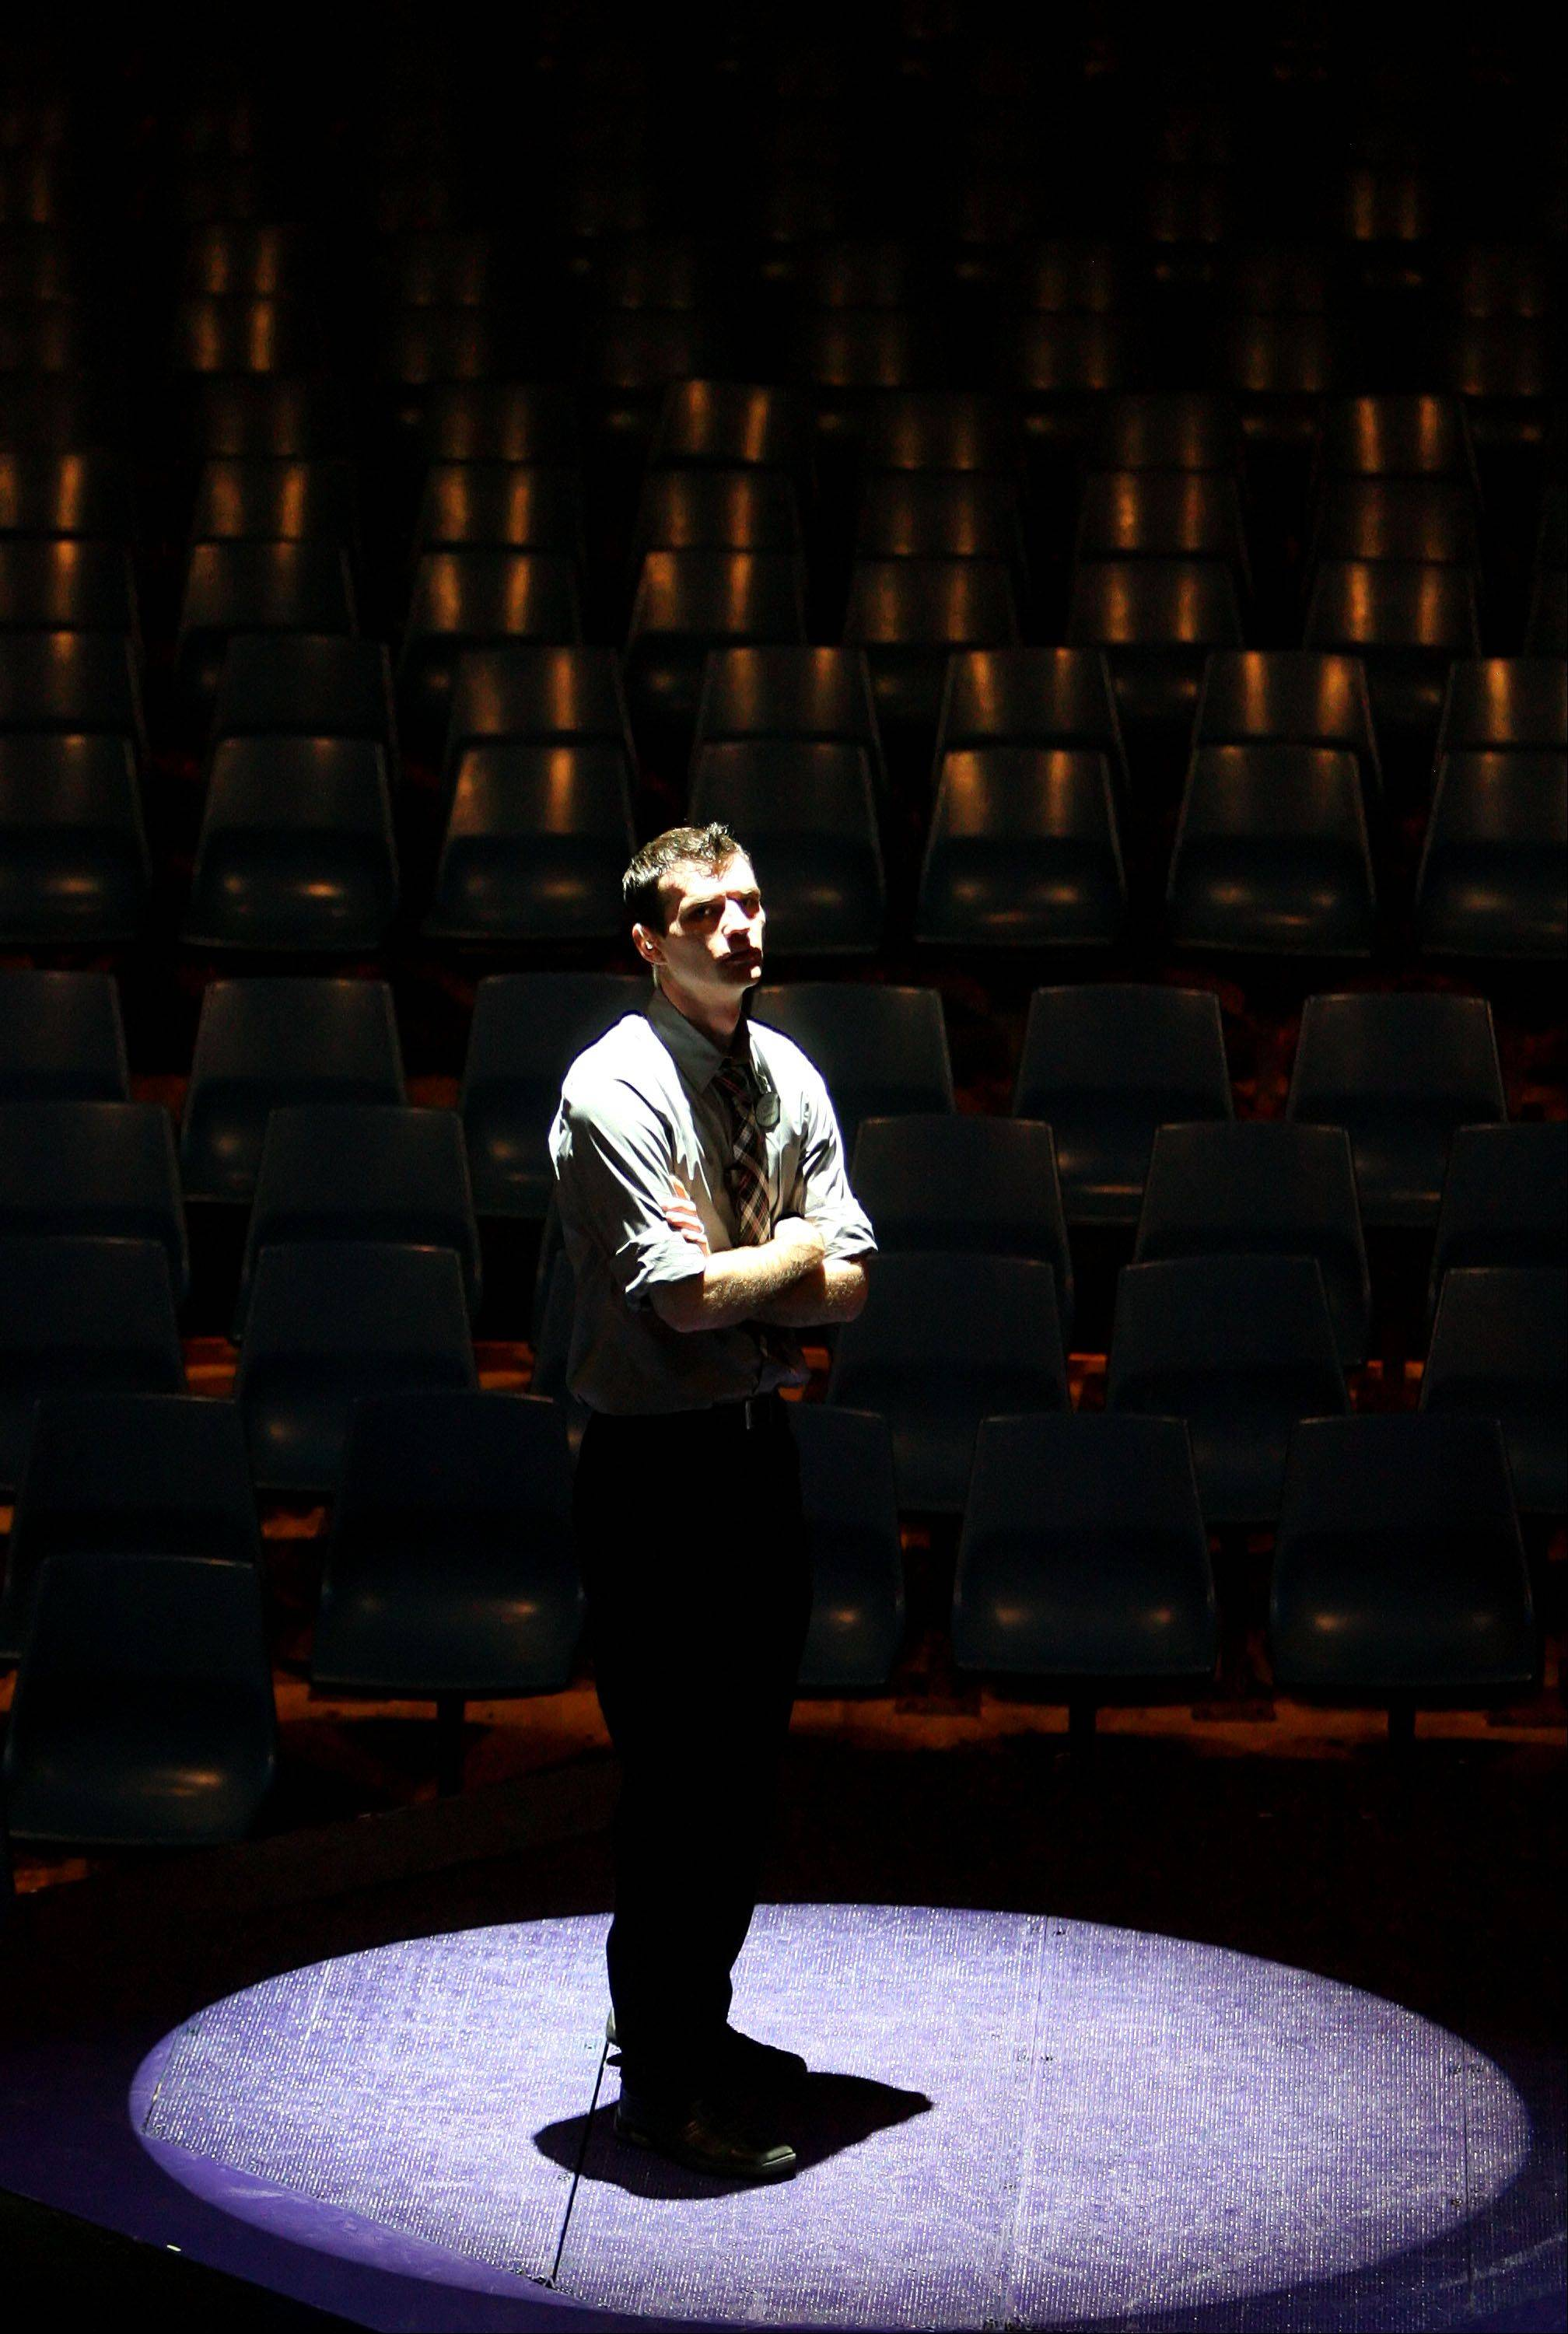 Technical supervisor Scott Schroeder of Appleton, Wisconsin checks out the stage during a rehearsal.